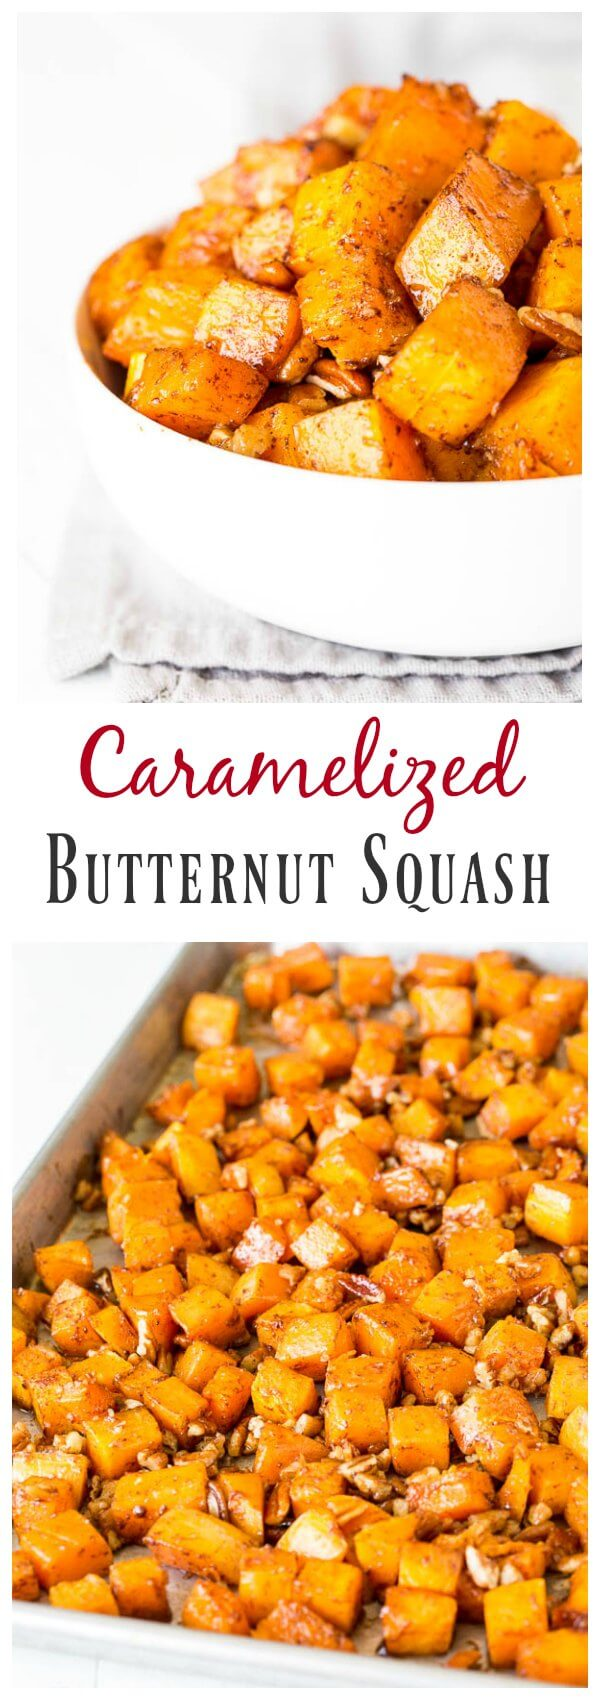 Roasted Butternut Squash for a Crowd + Video ~Sweet \u0026 Savory by Shinee